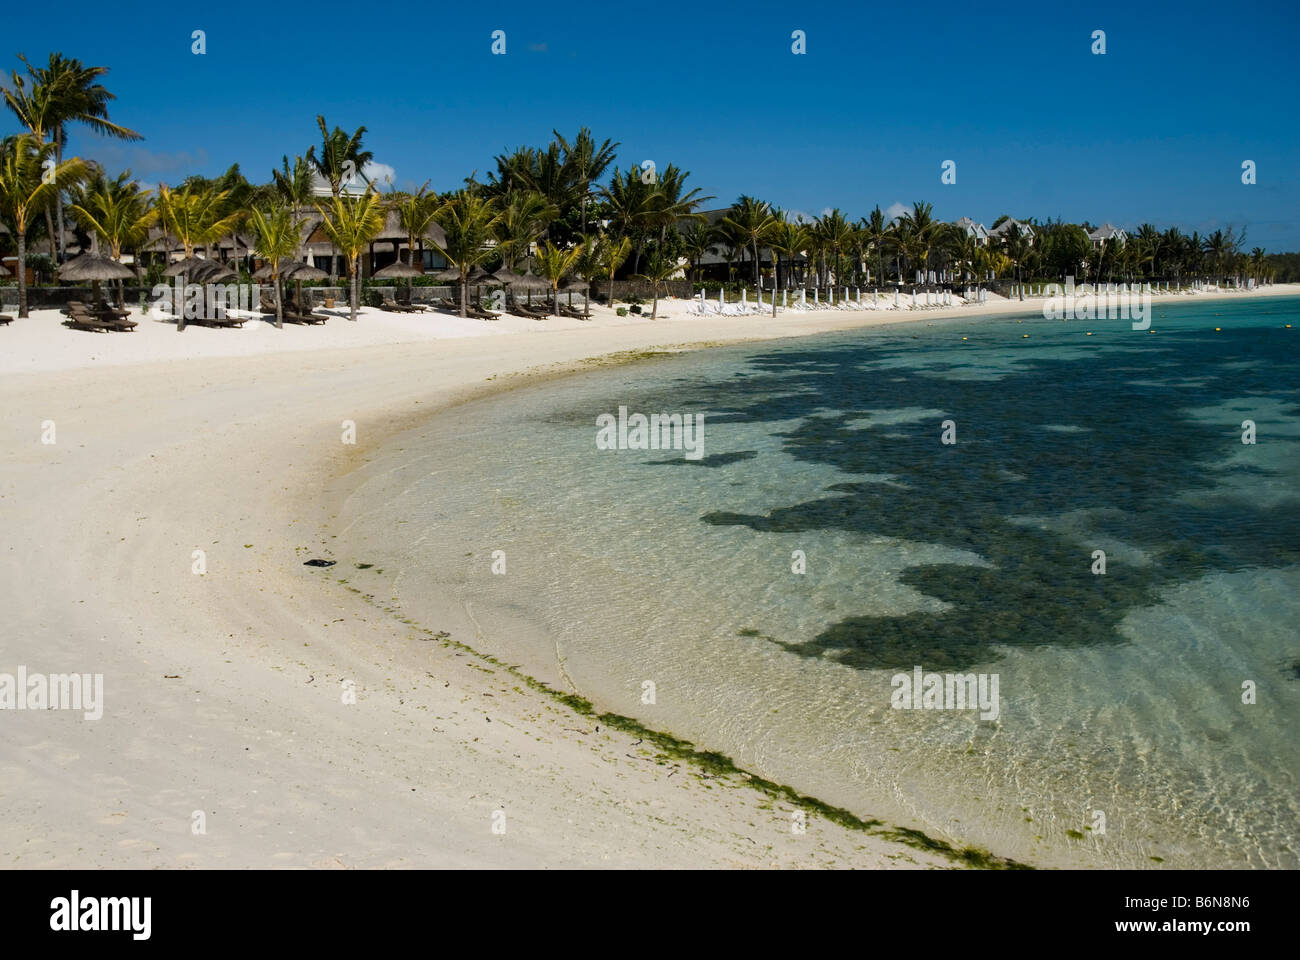 Beach of Hotel The Residence in Belle Mare area MAURITIUS ISLAND - Stock Image